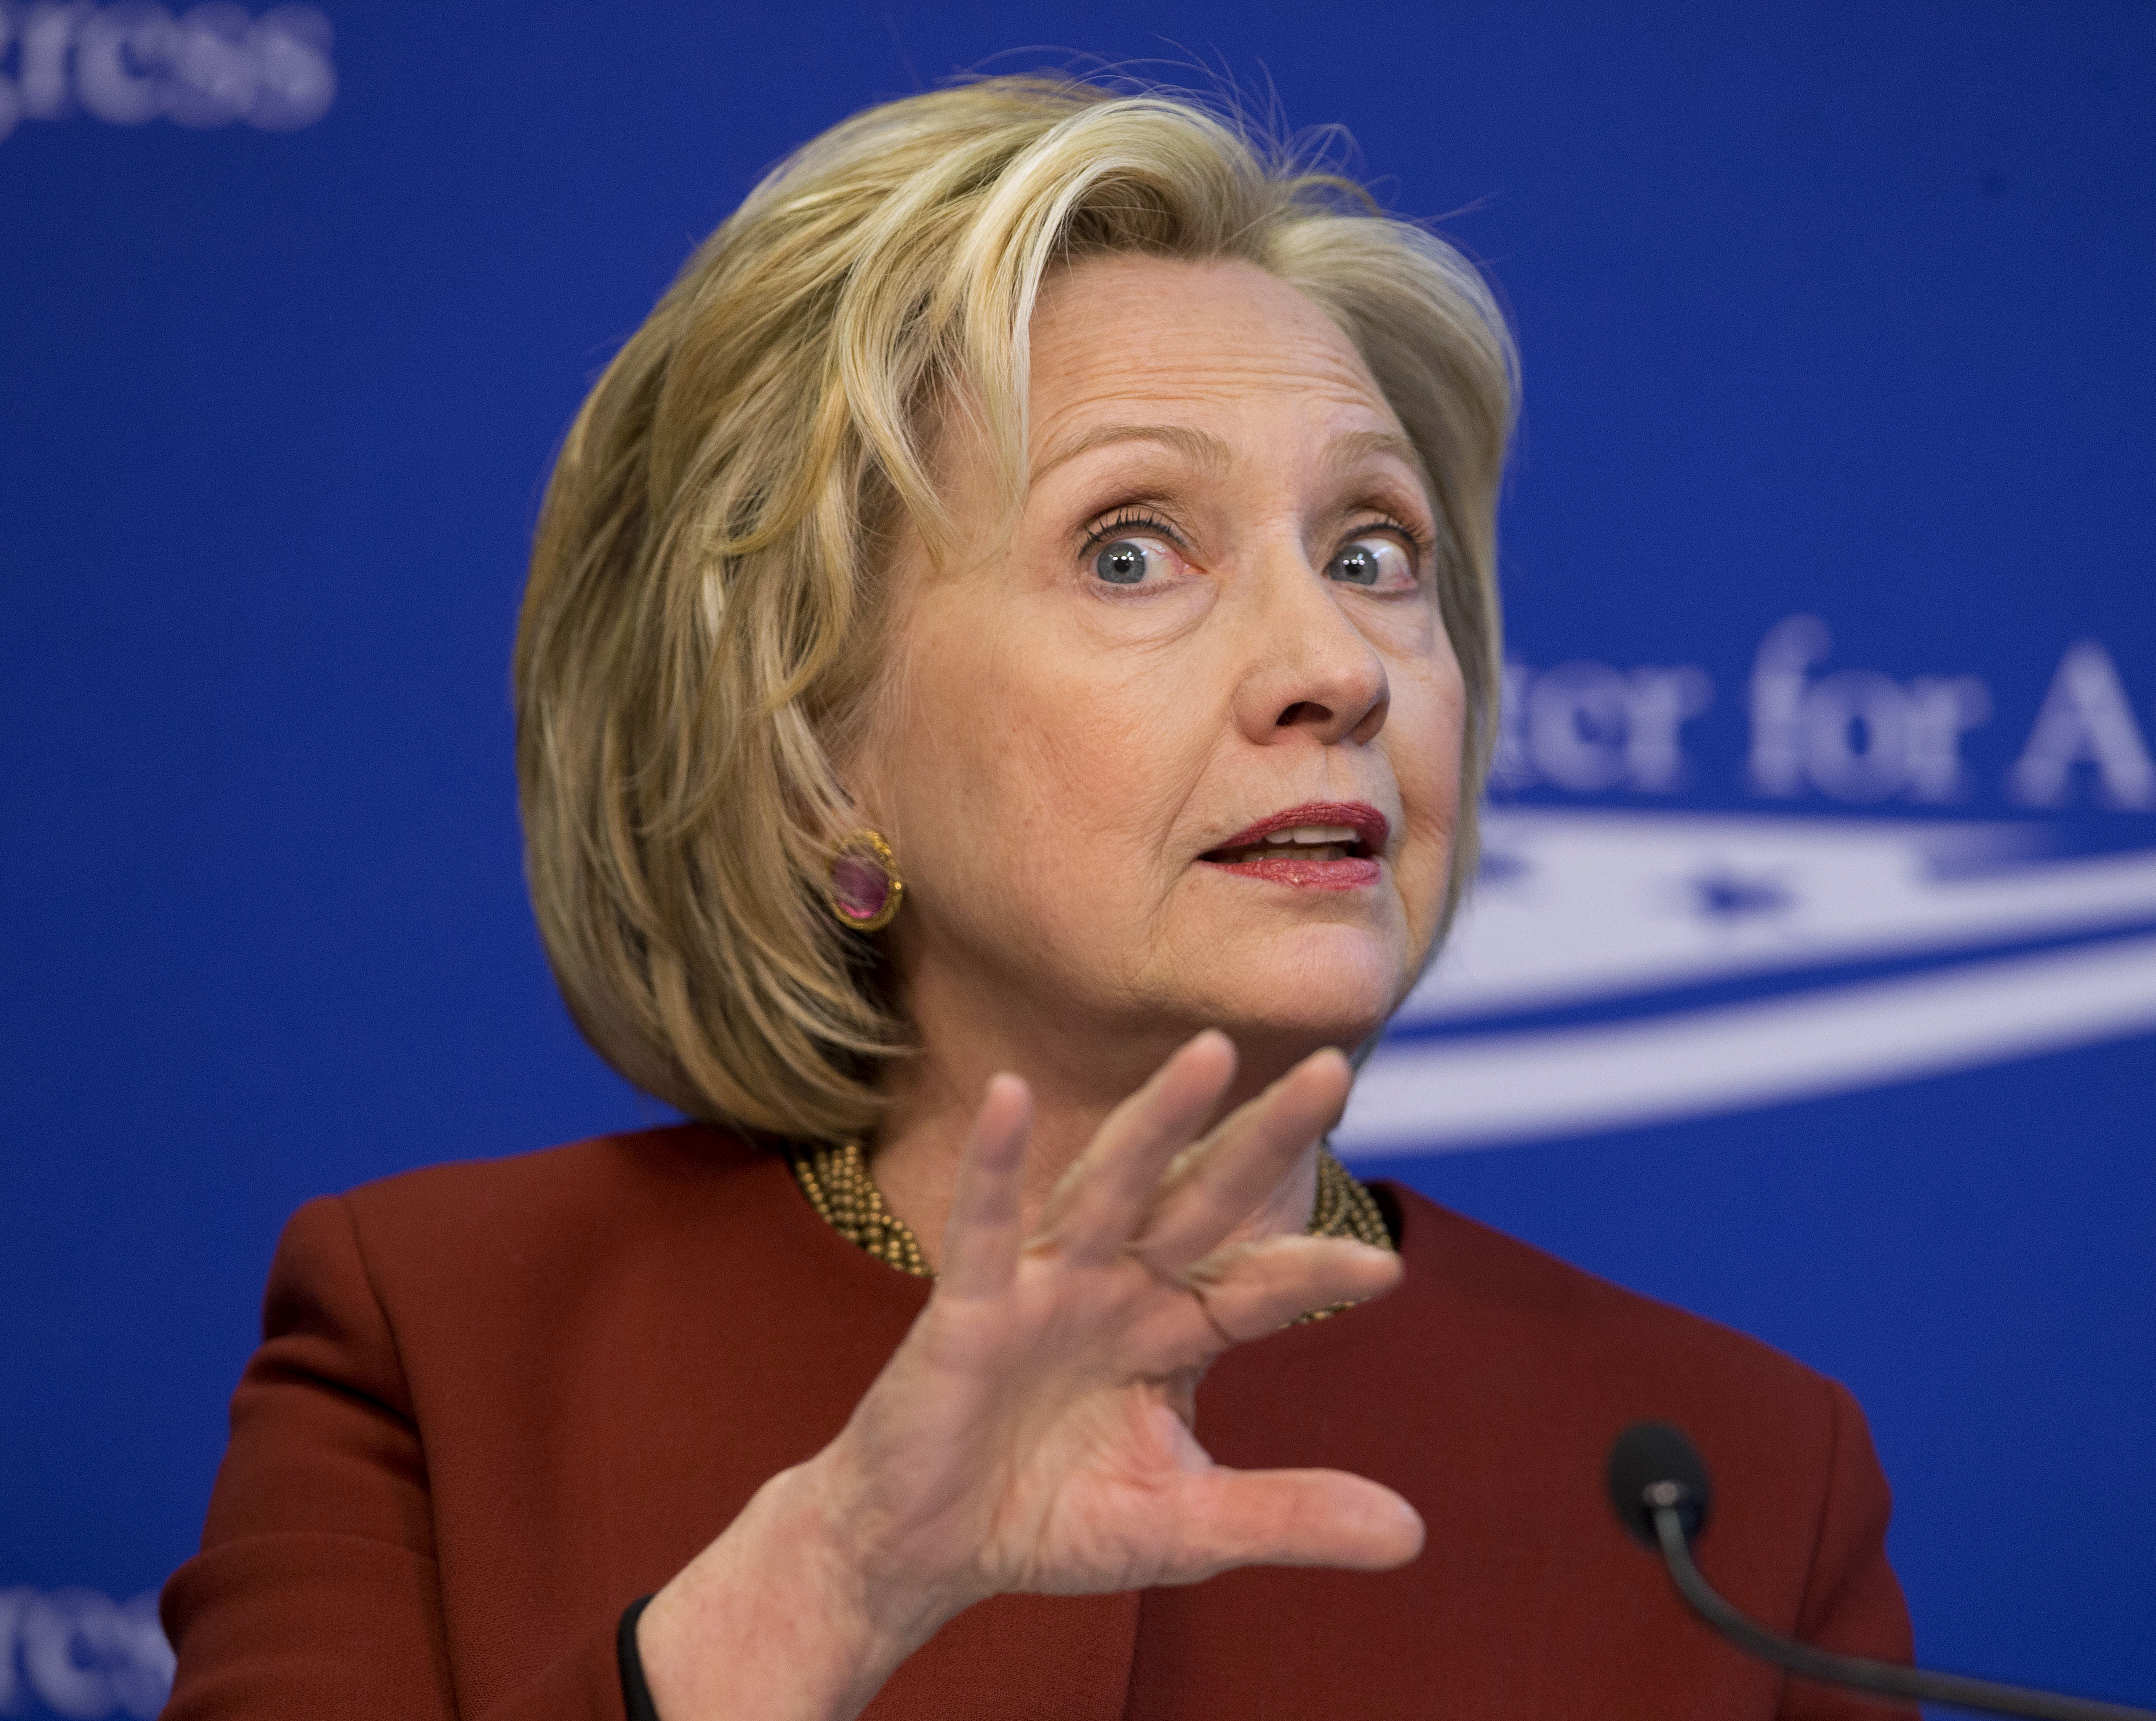 Hillary Clinton 2016 Presidential Campaign Announcement Delayed By